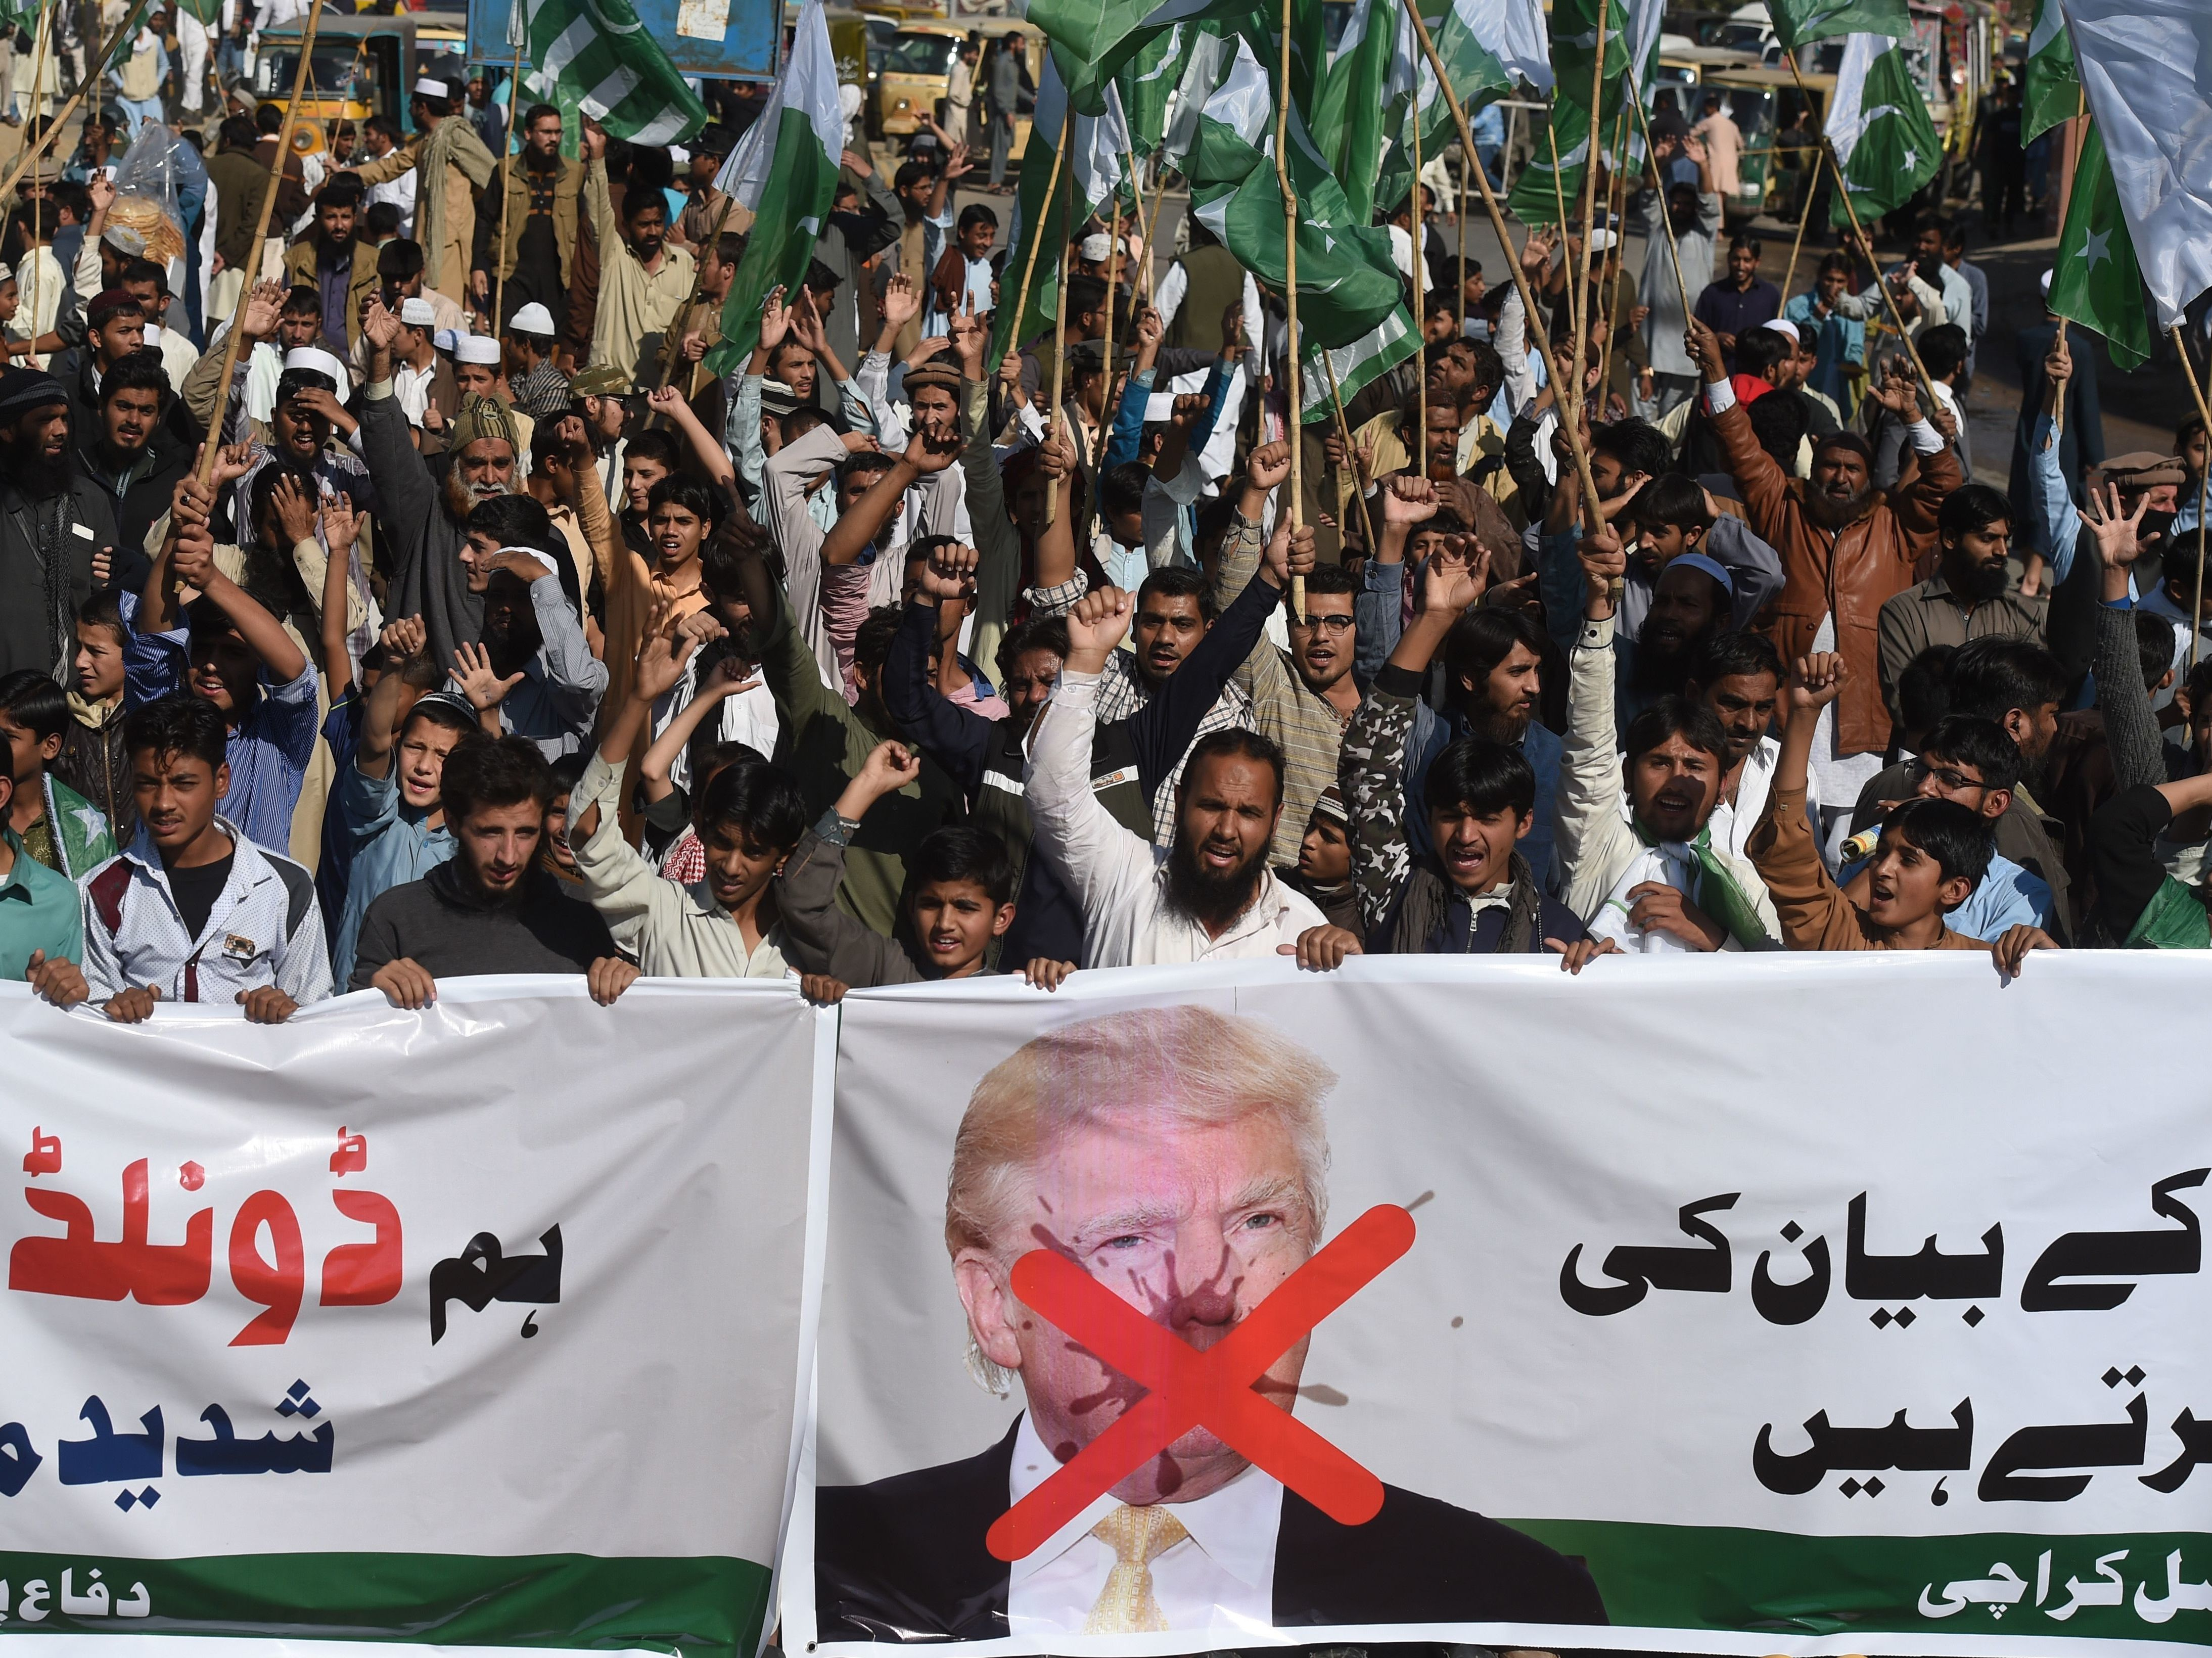 Activists of the Difa-e-Pakistan Council shout anti-U.S. slogans at a protest in Karachi on Tuesday. Pakistan summoned the U.S. ambassador after President Trump lashed out at Islamabad with threats to cut aid over